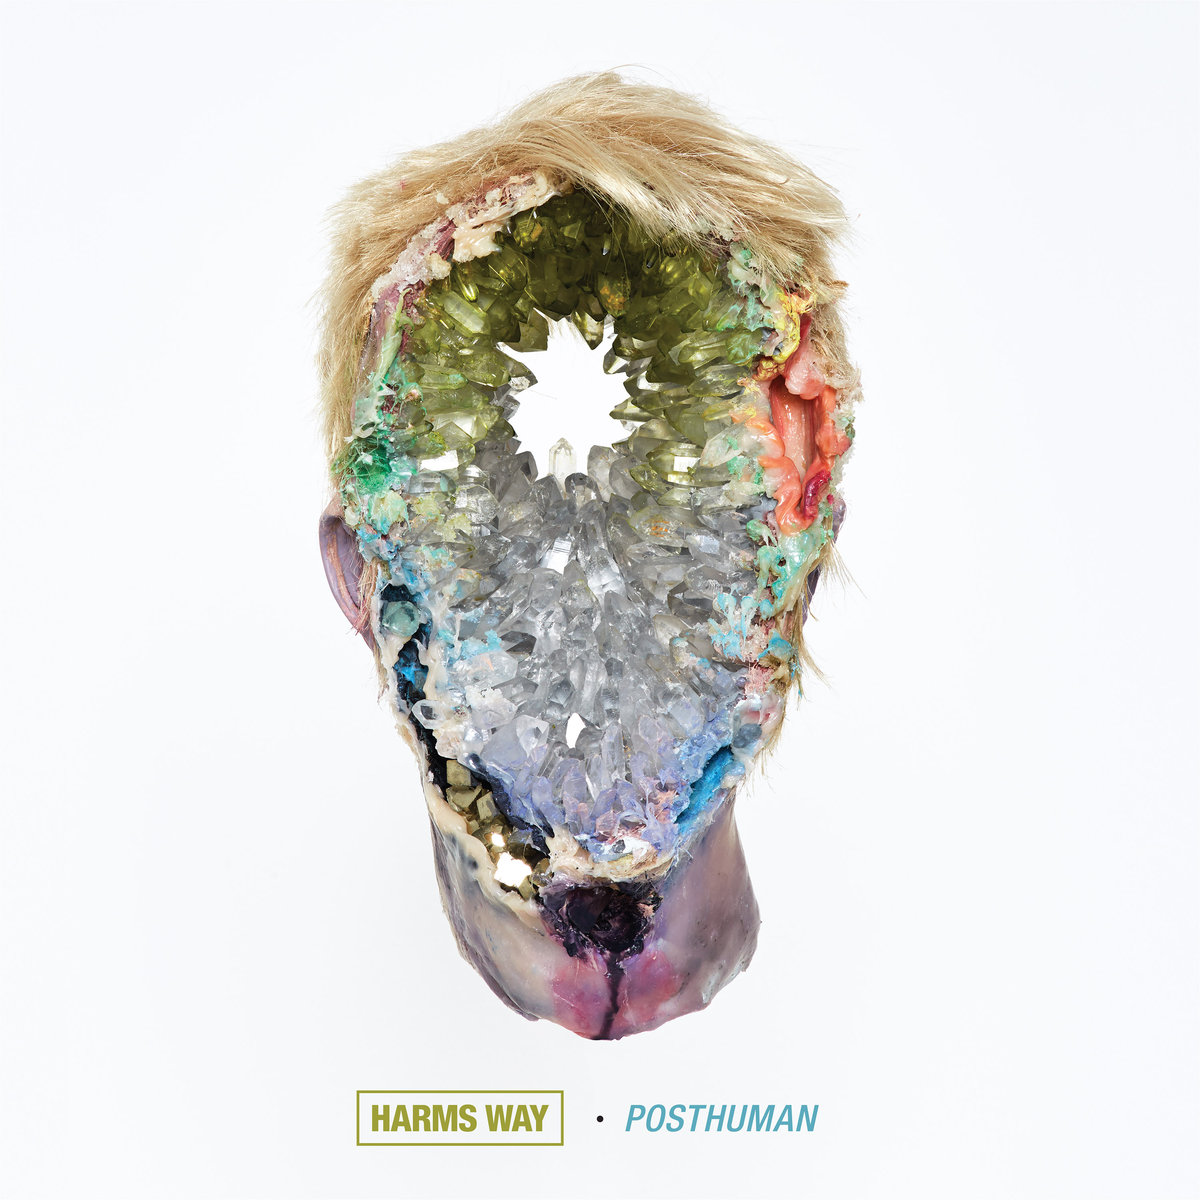 16. Harms Way - Posthuman - Full of aggresive riffs and breakdowns, although Harms Way certainly wave the 'bro-metal' flag high and proud, Posthuman never becomes monotonous and is rather multi-dimensional. Along with the face-pummeling in-your-face swagger, there is a vibrant noisy, industrial facet to Posthuman that is intriguing and edgy.